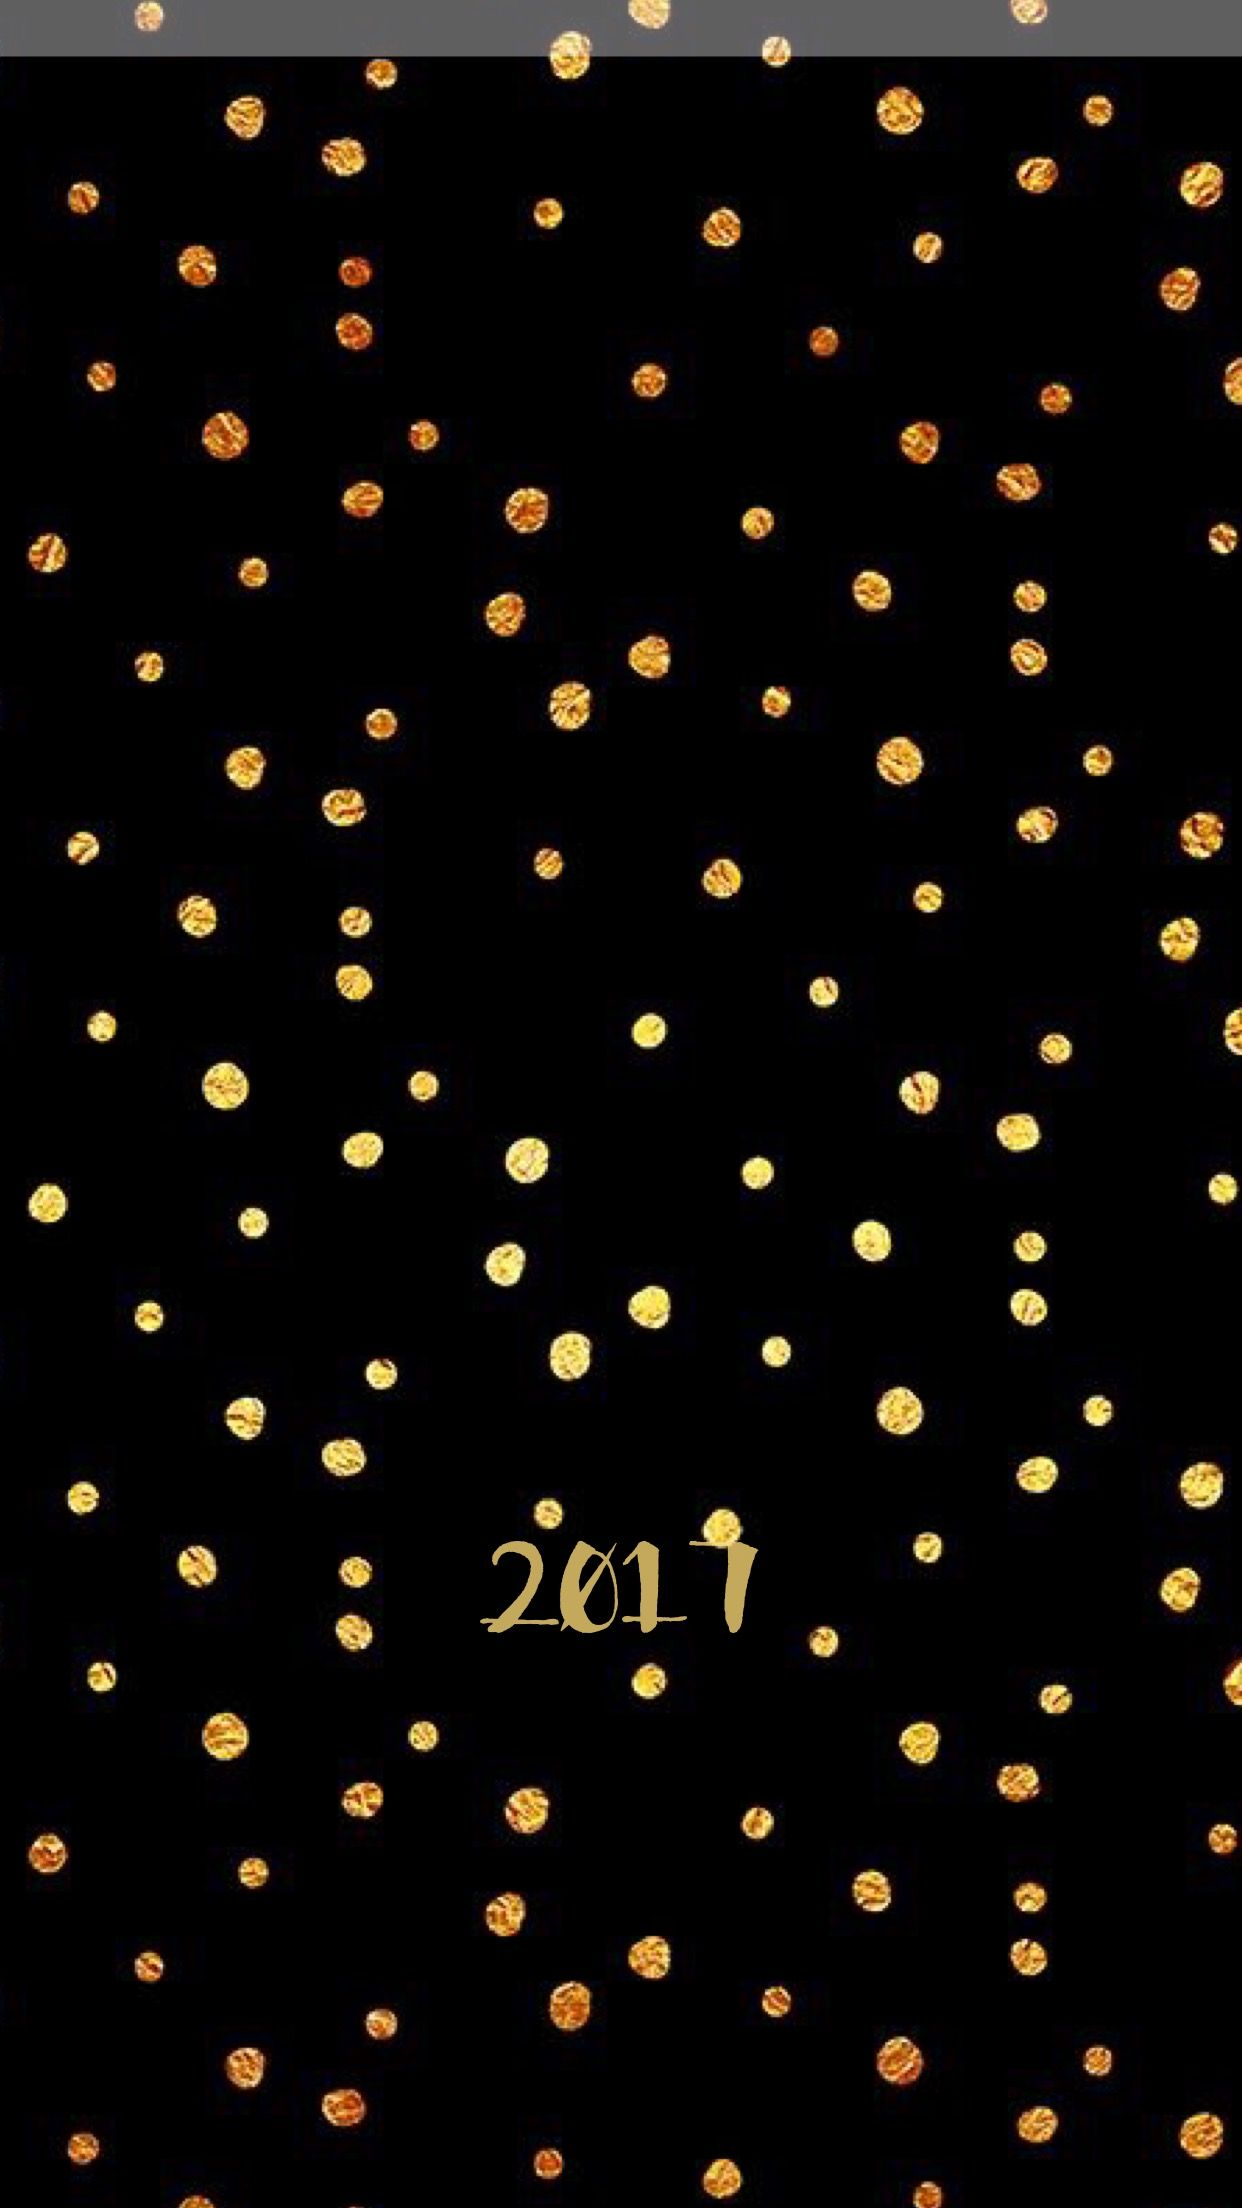 Gold, 2017, Wallpaper, Black, Background, Iphone, Hd